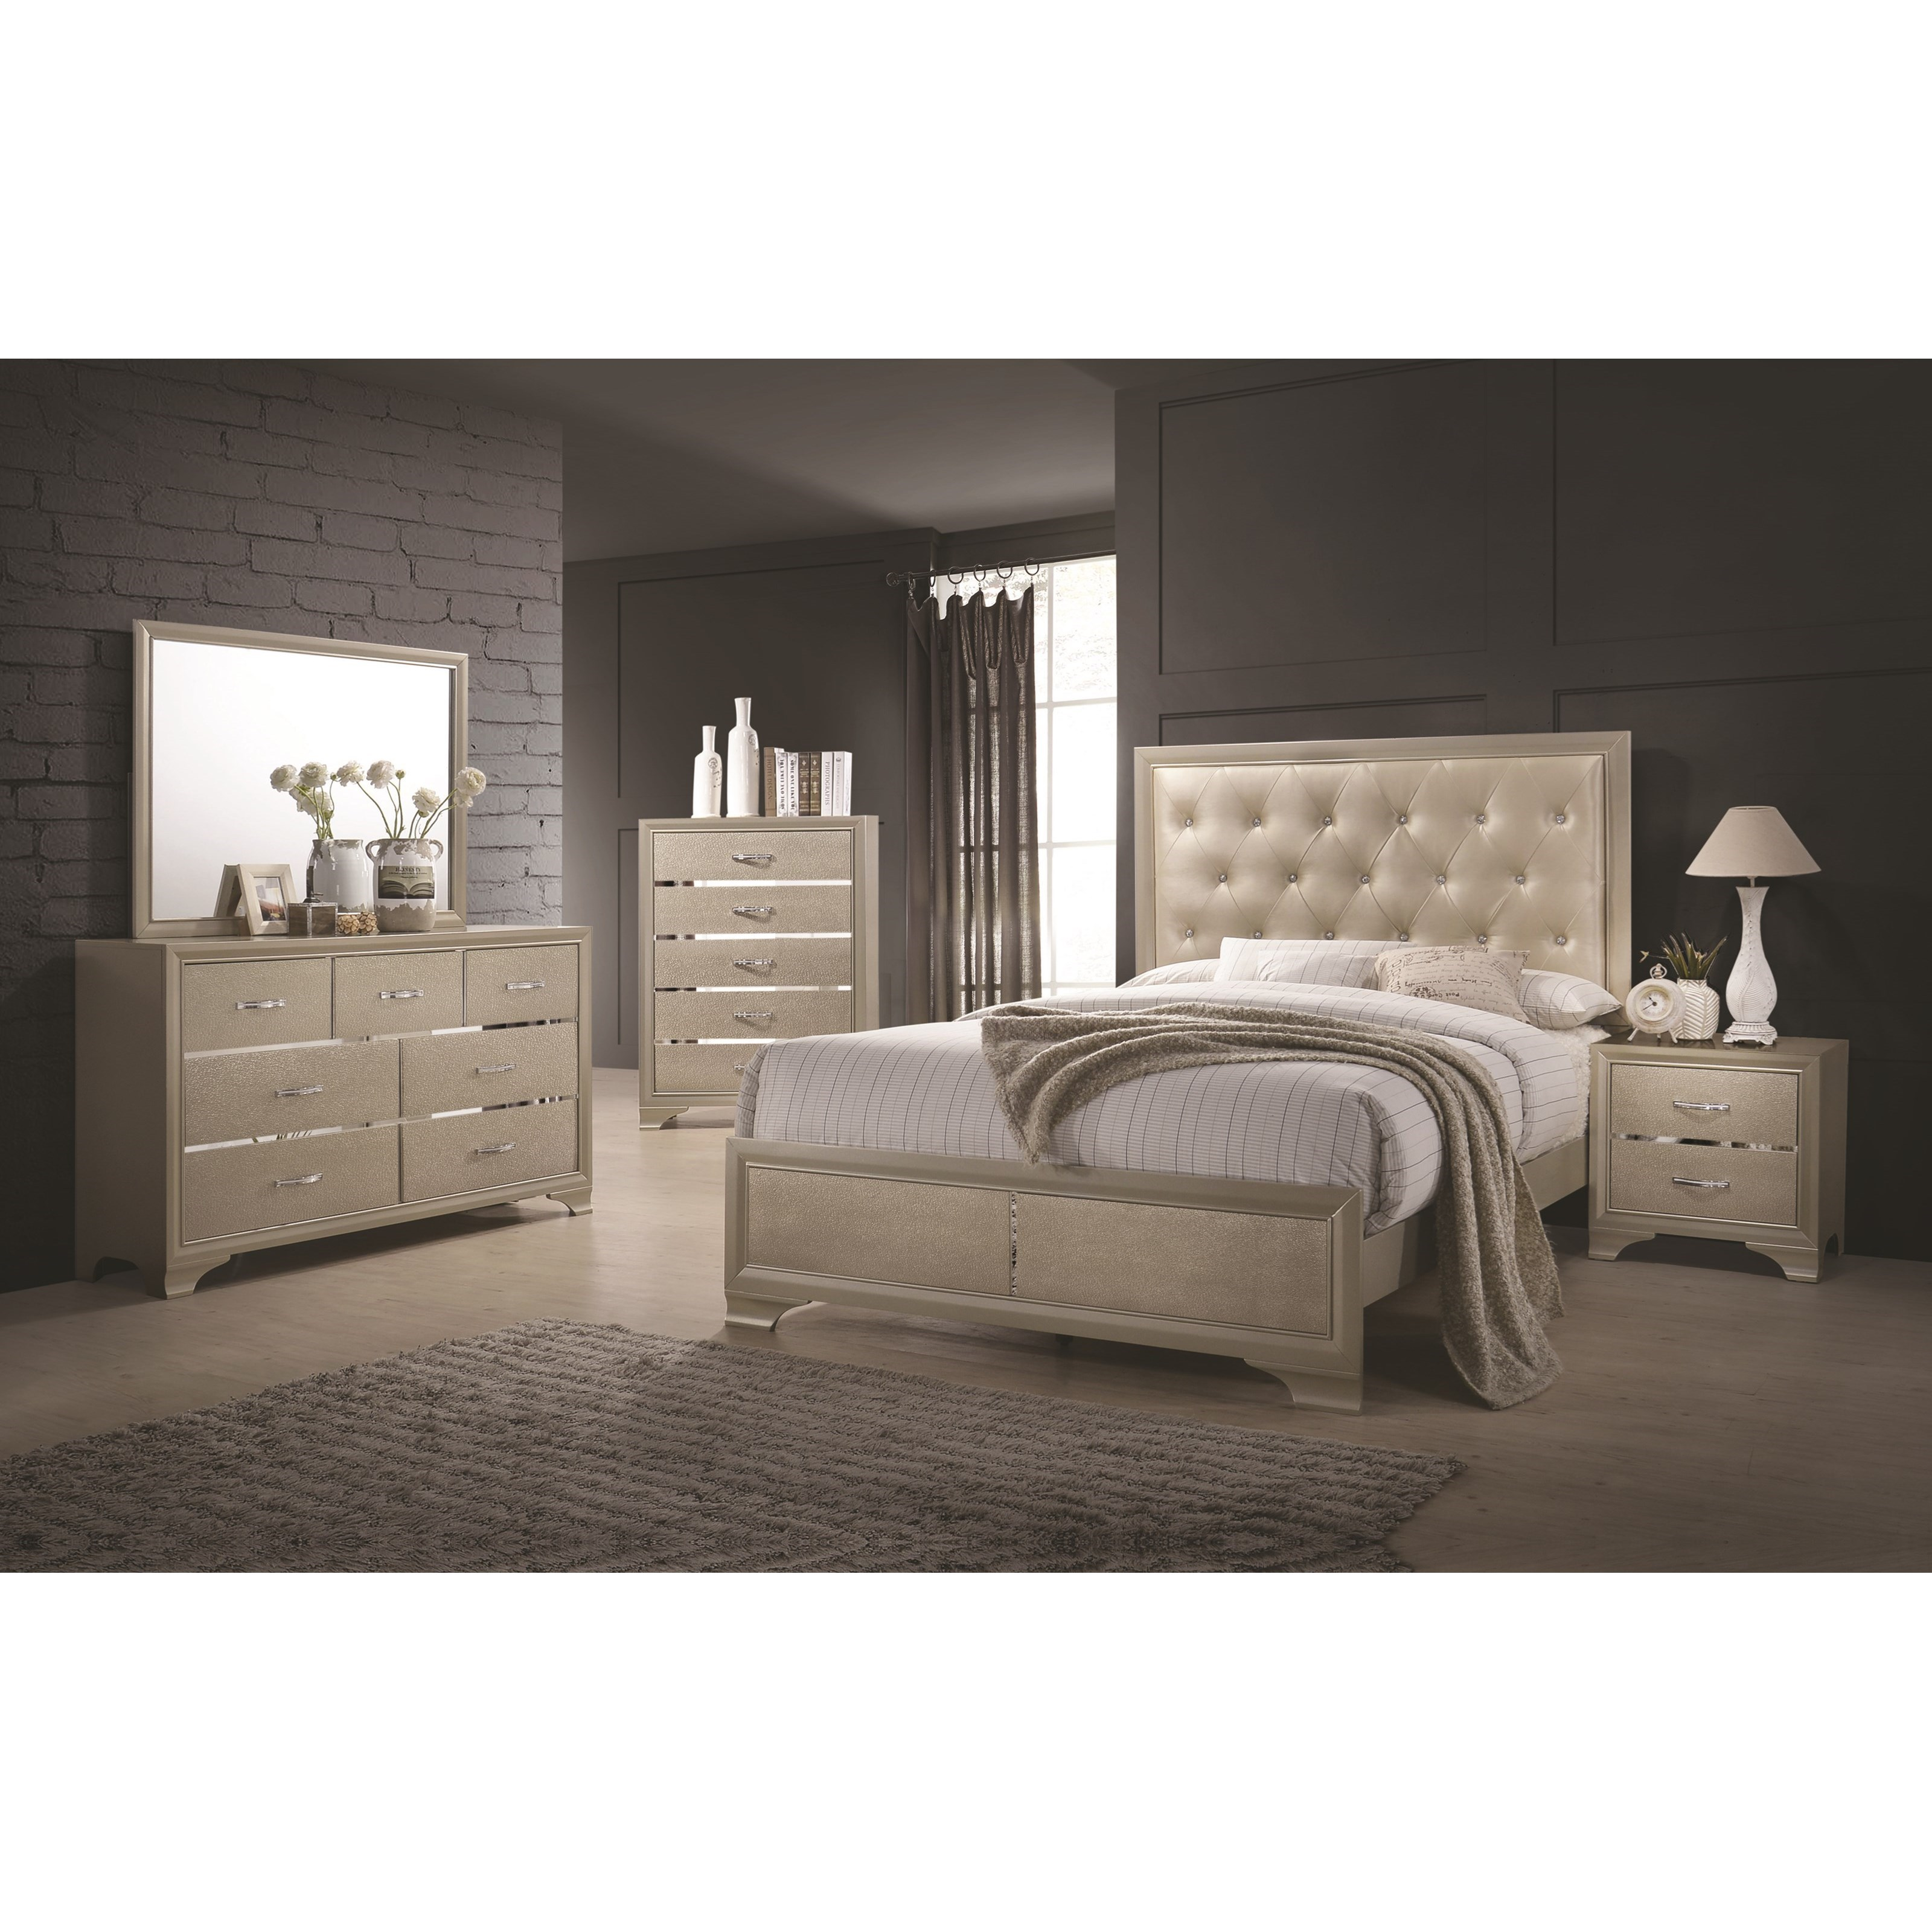 Beaumont Queen Bedroom Group by Coaster at Northeast Factory Direct